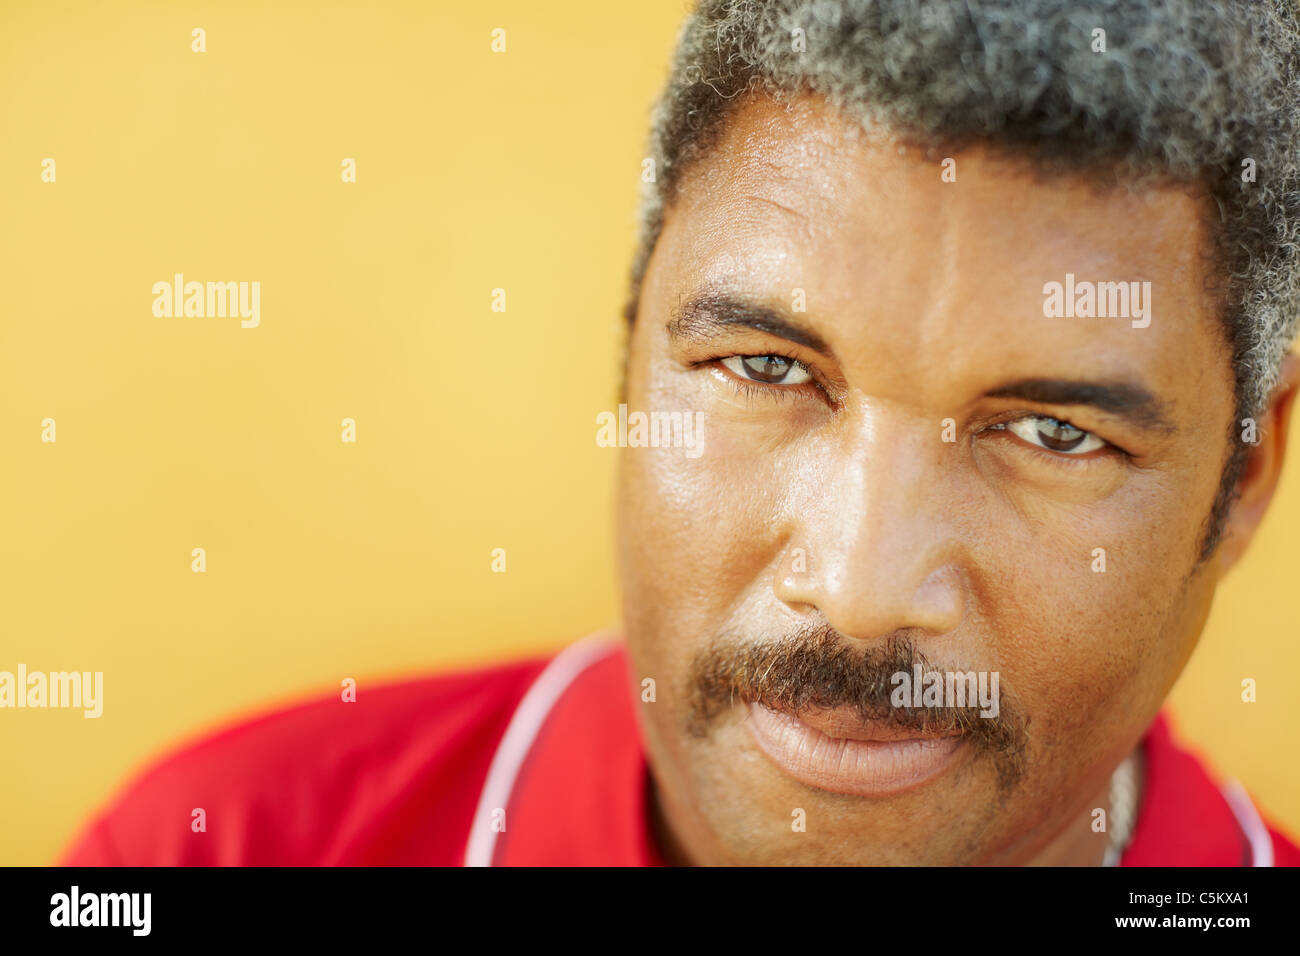 50 years old latin american man looking at camera with intense stare. Head and shoulders, copy space - Stock Image